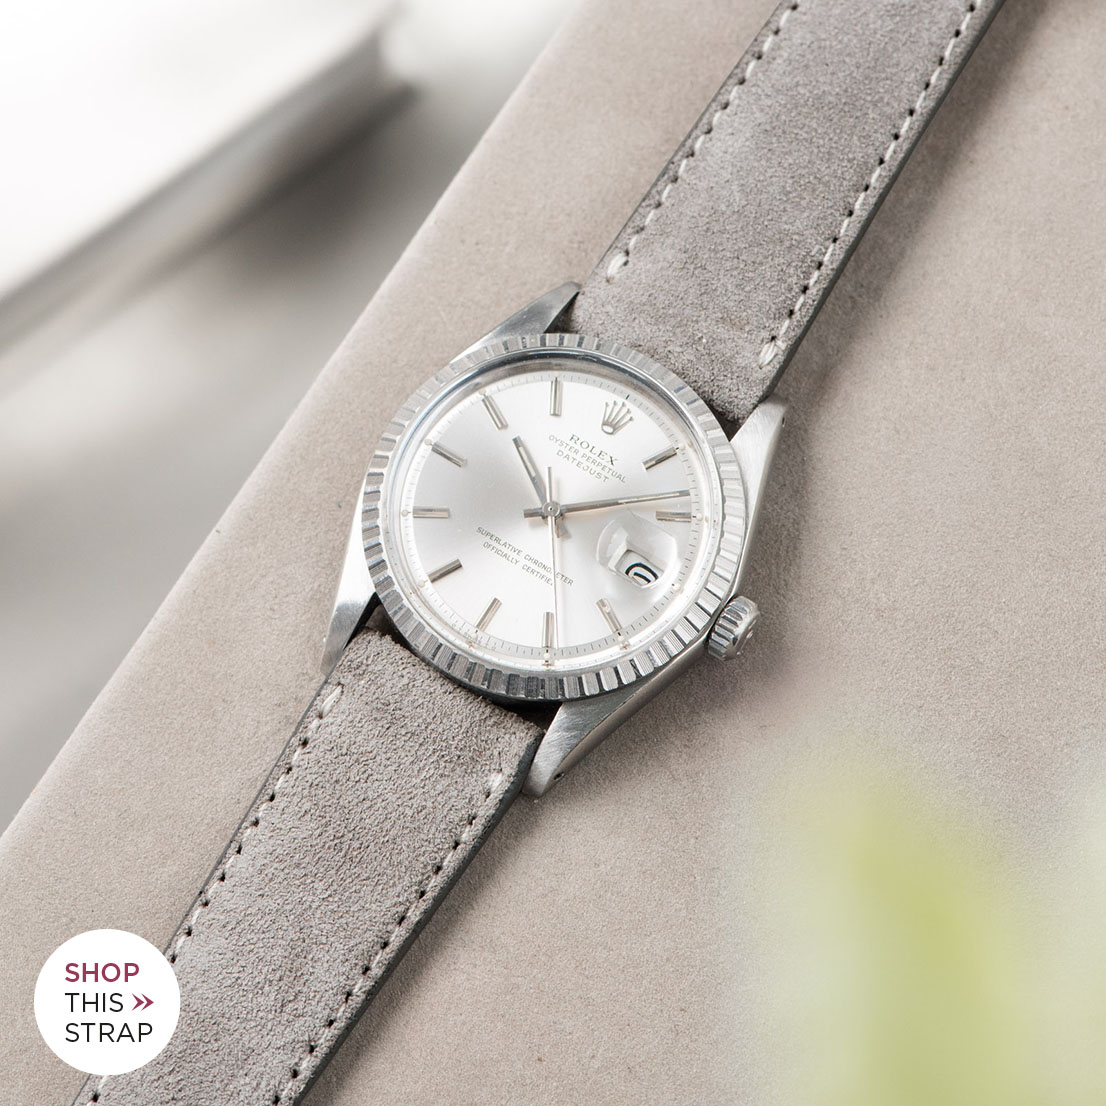 Bulang and sons_Strap Guide_Rolex Datejust Silverdial 1601 1603 1600 1630_HARBOR GREY SILKY SUEDE LEATHER WATCH STRAP